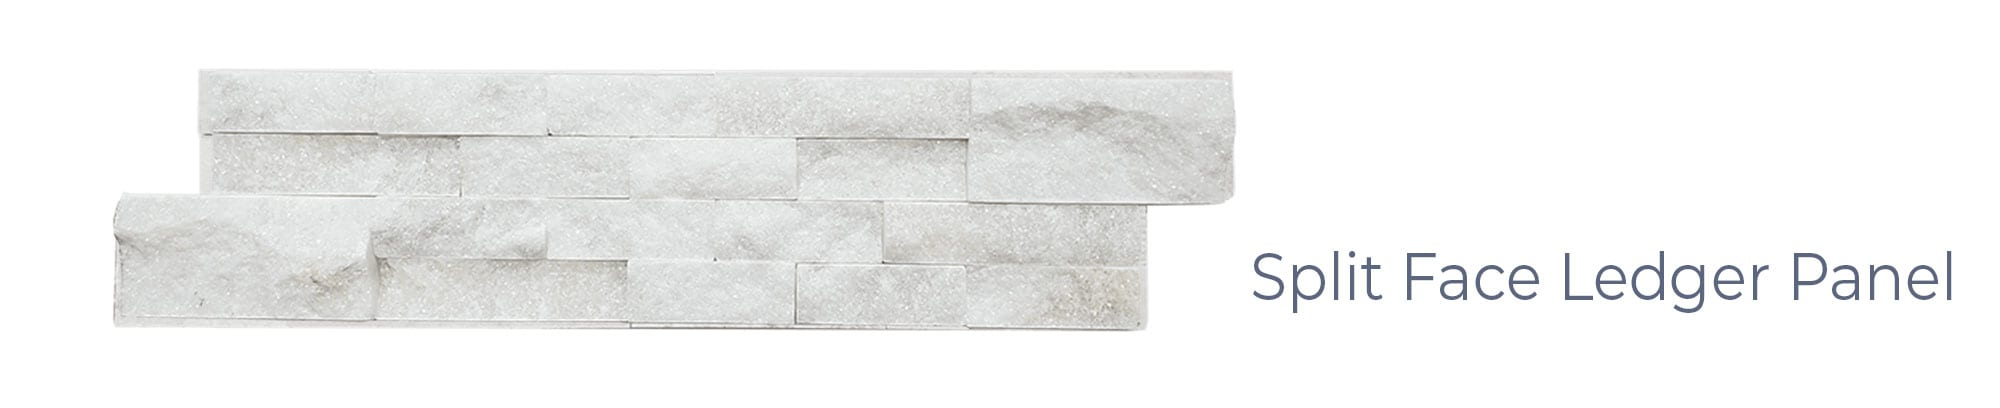 Stoneline-Group-Ice-White-Marble-Collection-Marble-Veneer-Split-Face-Ledger-Panel-Pictures